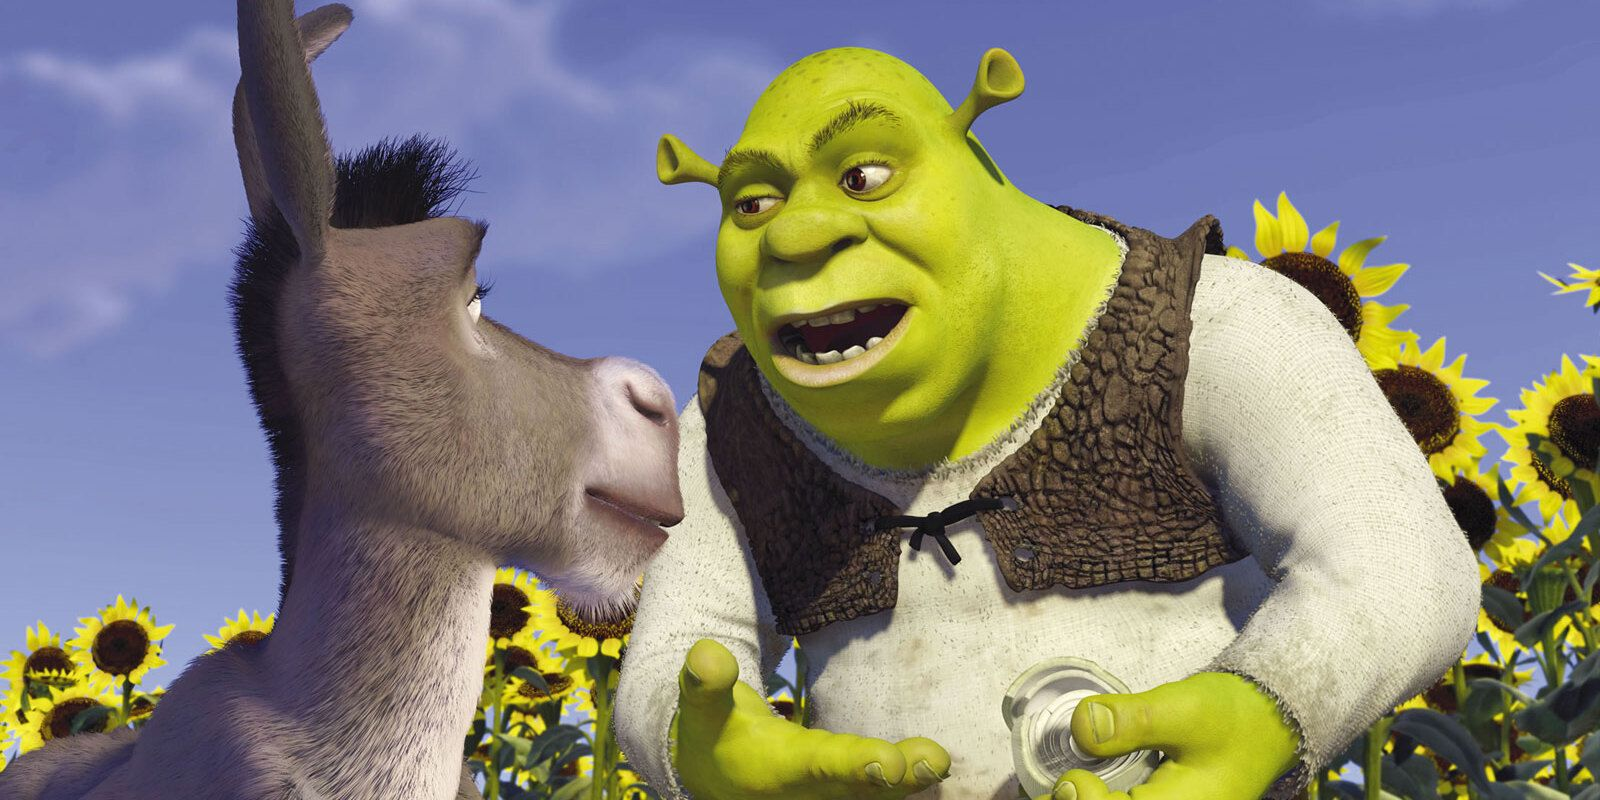 Shrek Returning To Theaters For 3 Nights To Celebrate 20th Anniversary